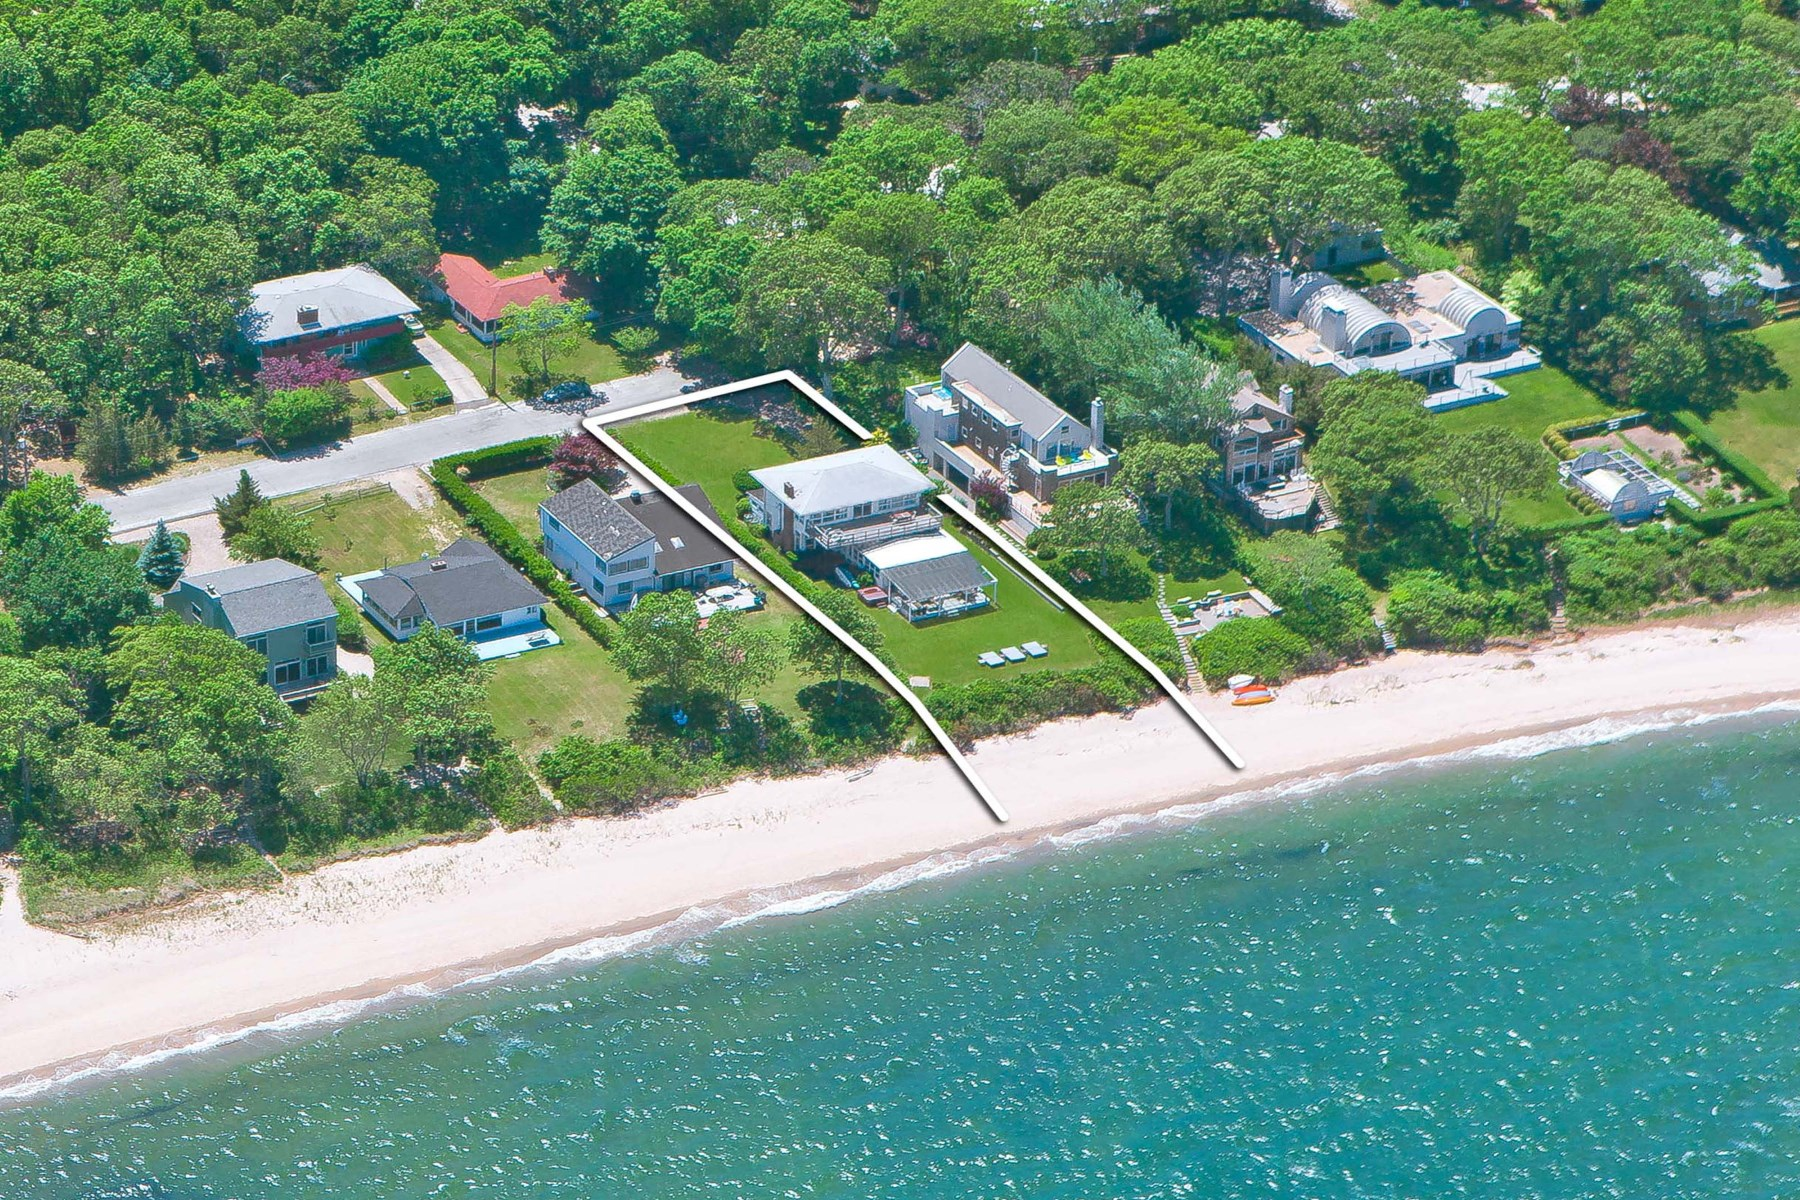 Single Family Home for Sale at Beachfront Cottage Panoramic Water Views 24 Ninevah Pl Sag Harbor, New York 11963 United States